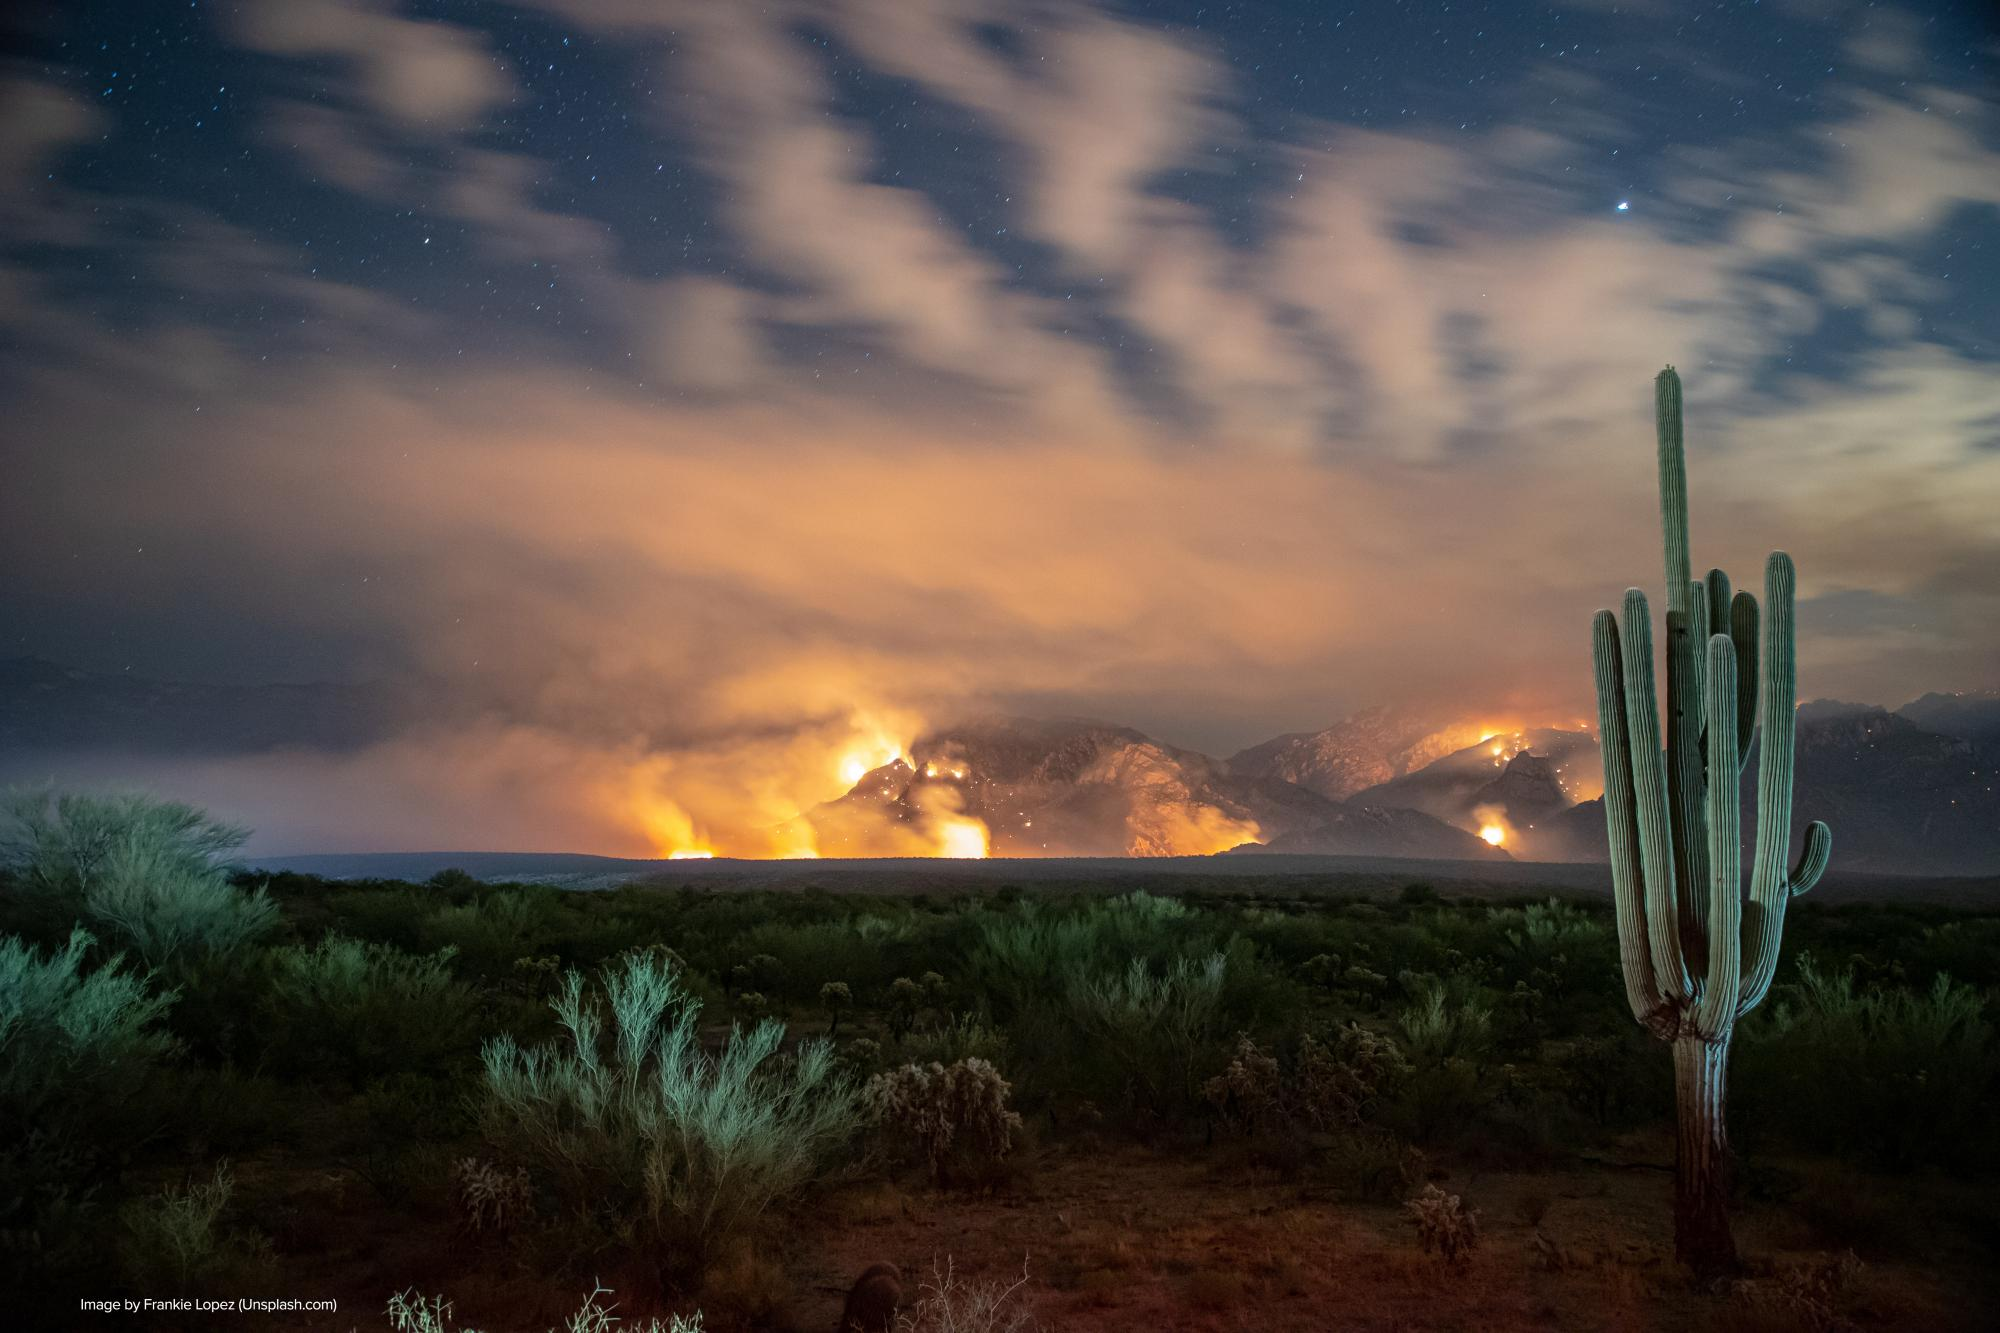 mountain on fire with cactus in foreground